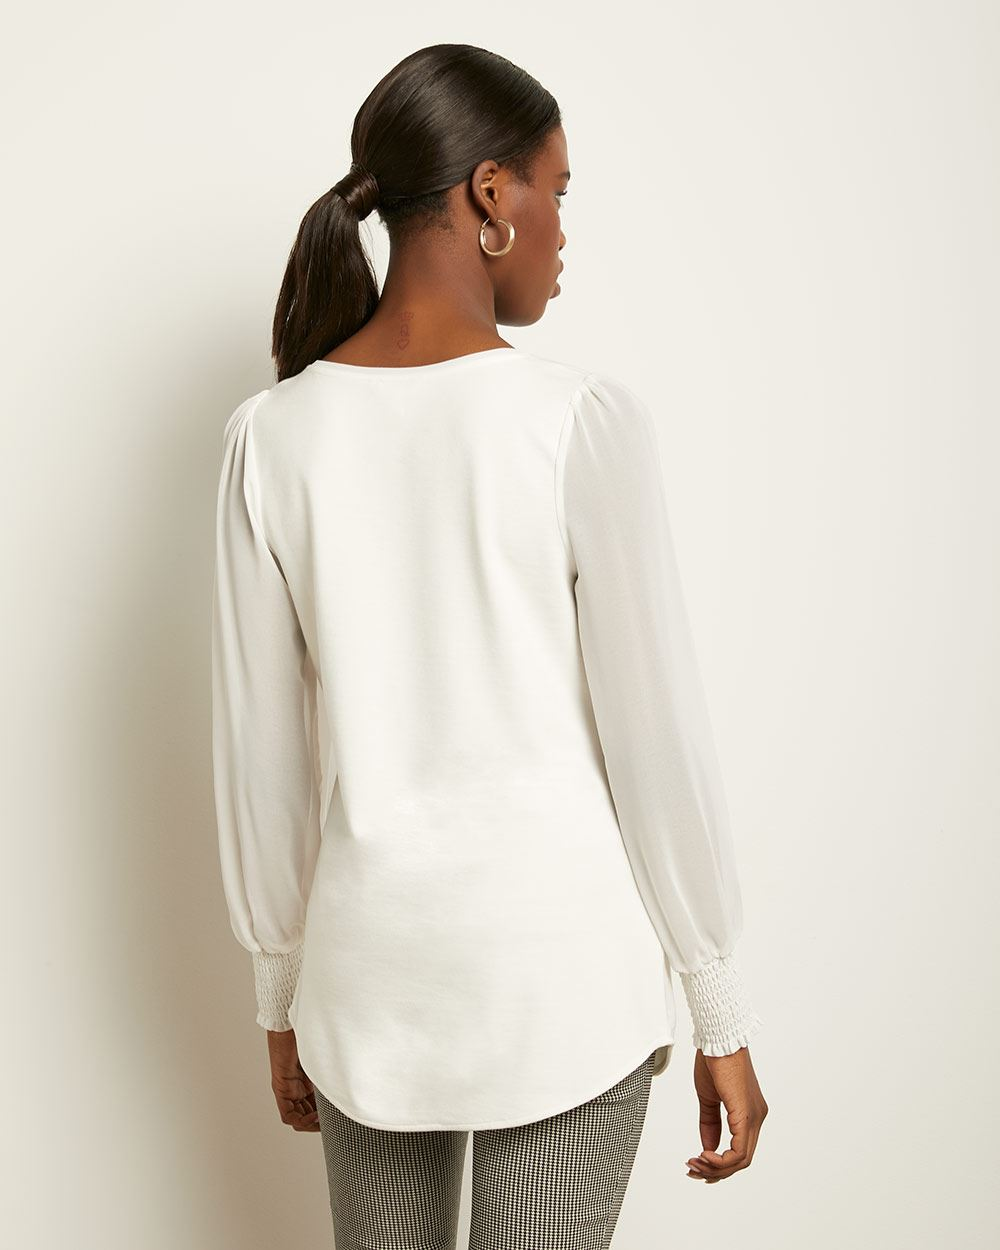 C&G Chiffon Sleeve V-Neck Tunic Top